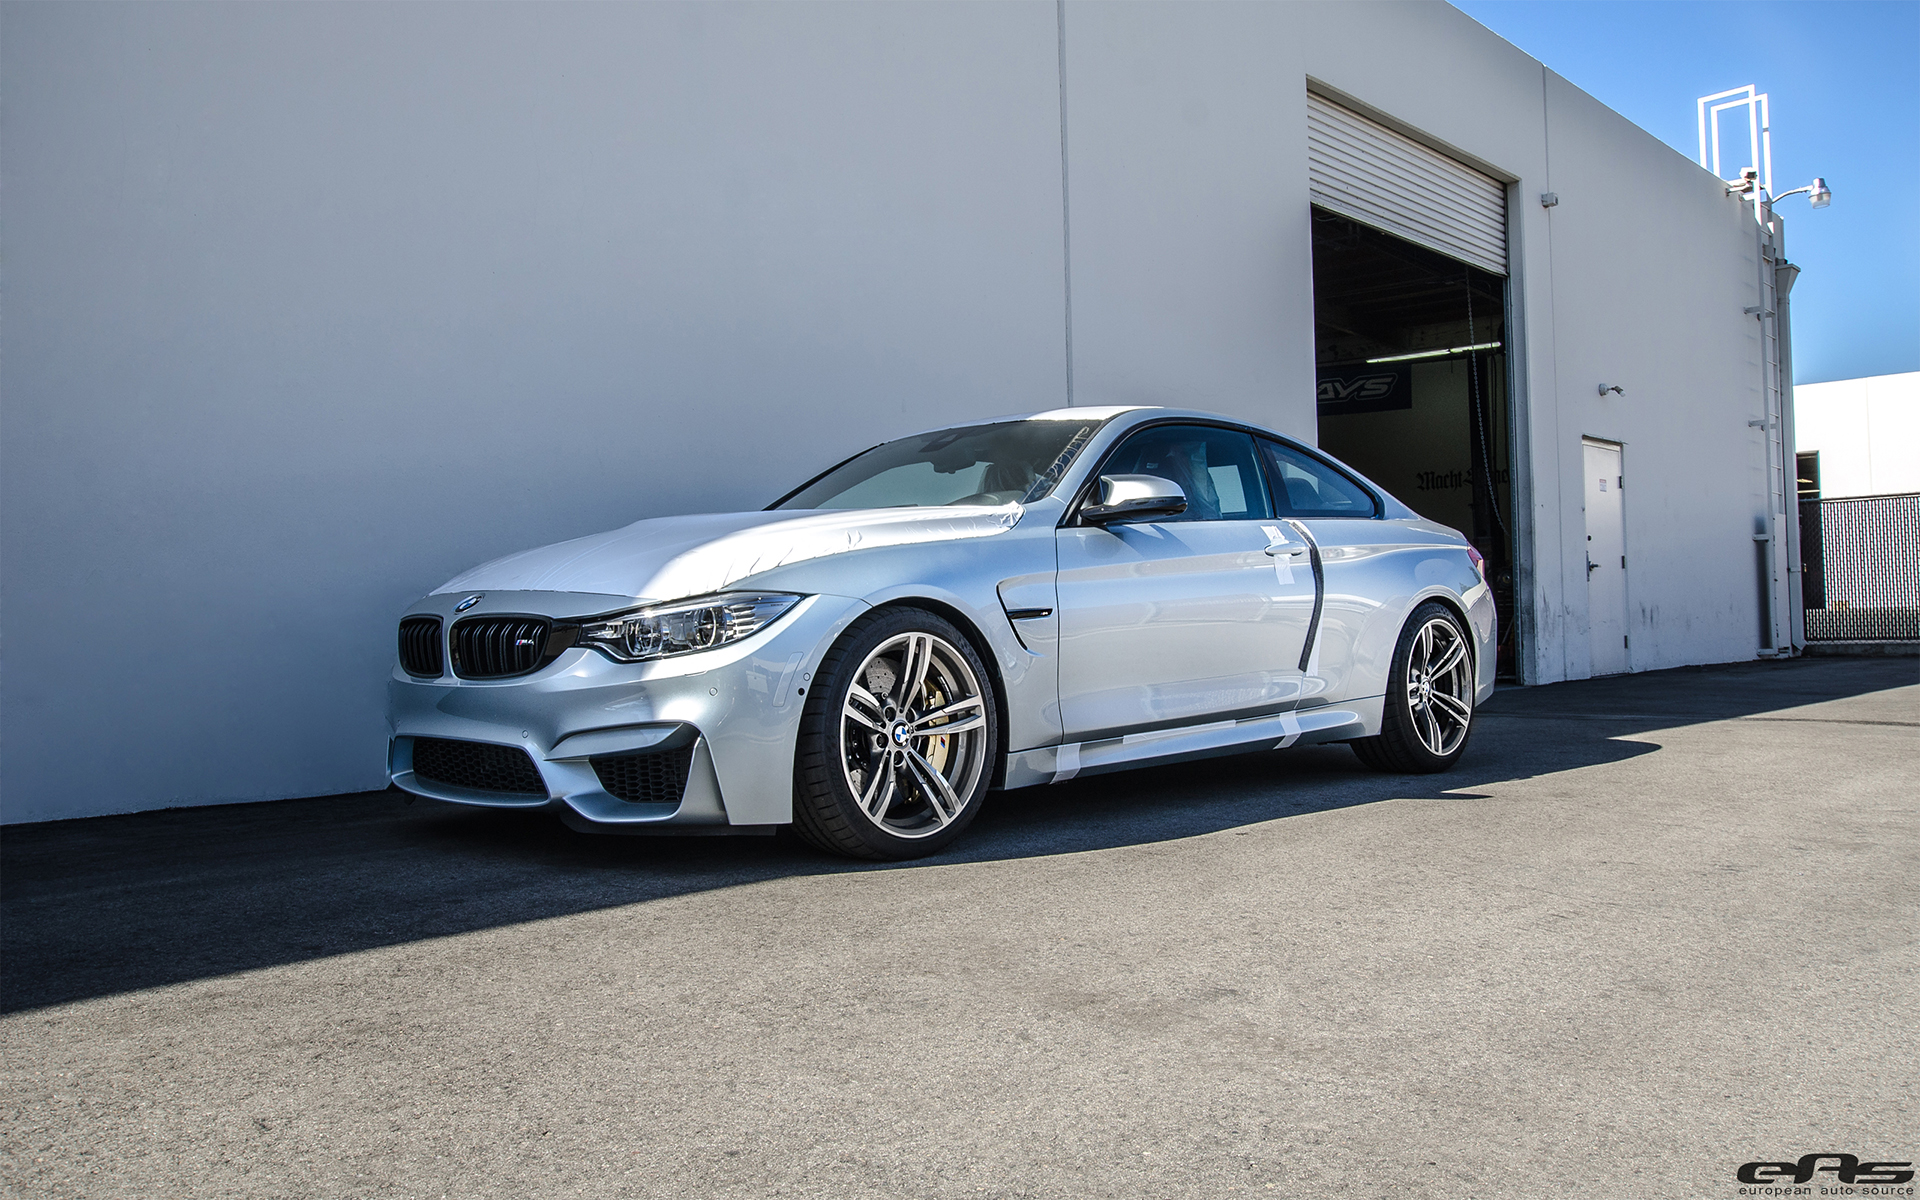 2016 Silverstone BMW F82 M4 Fresh Off The Lot 1